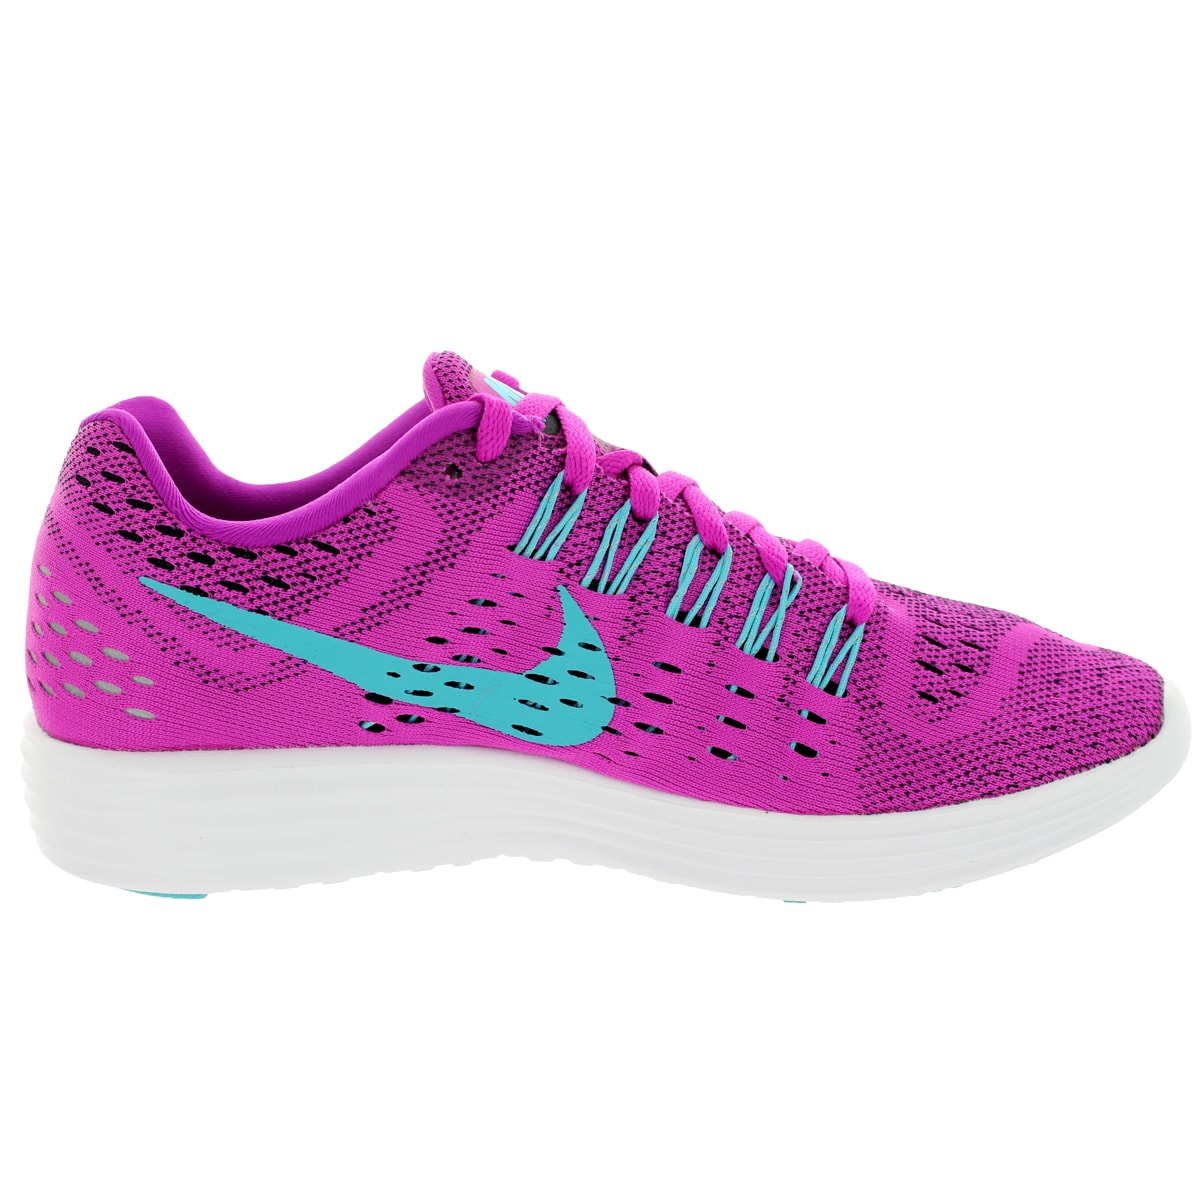 1dec1b514b86 Shop Nike Women s Lunartempo Fuchsia Flash Clrwtr Black Why Running Shoe -  Free Shipping Today - Overstock.com - 12321739